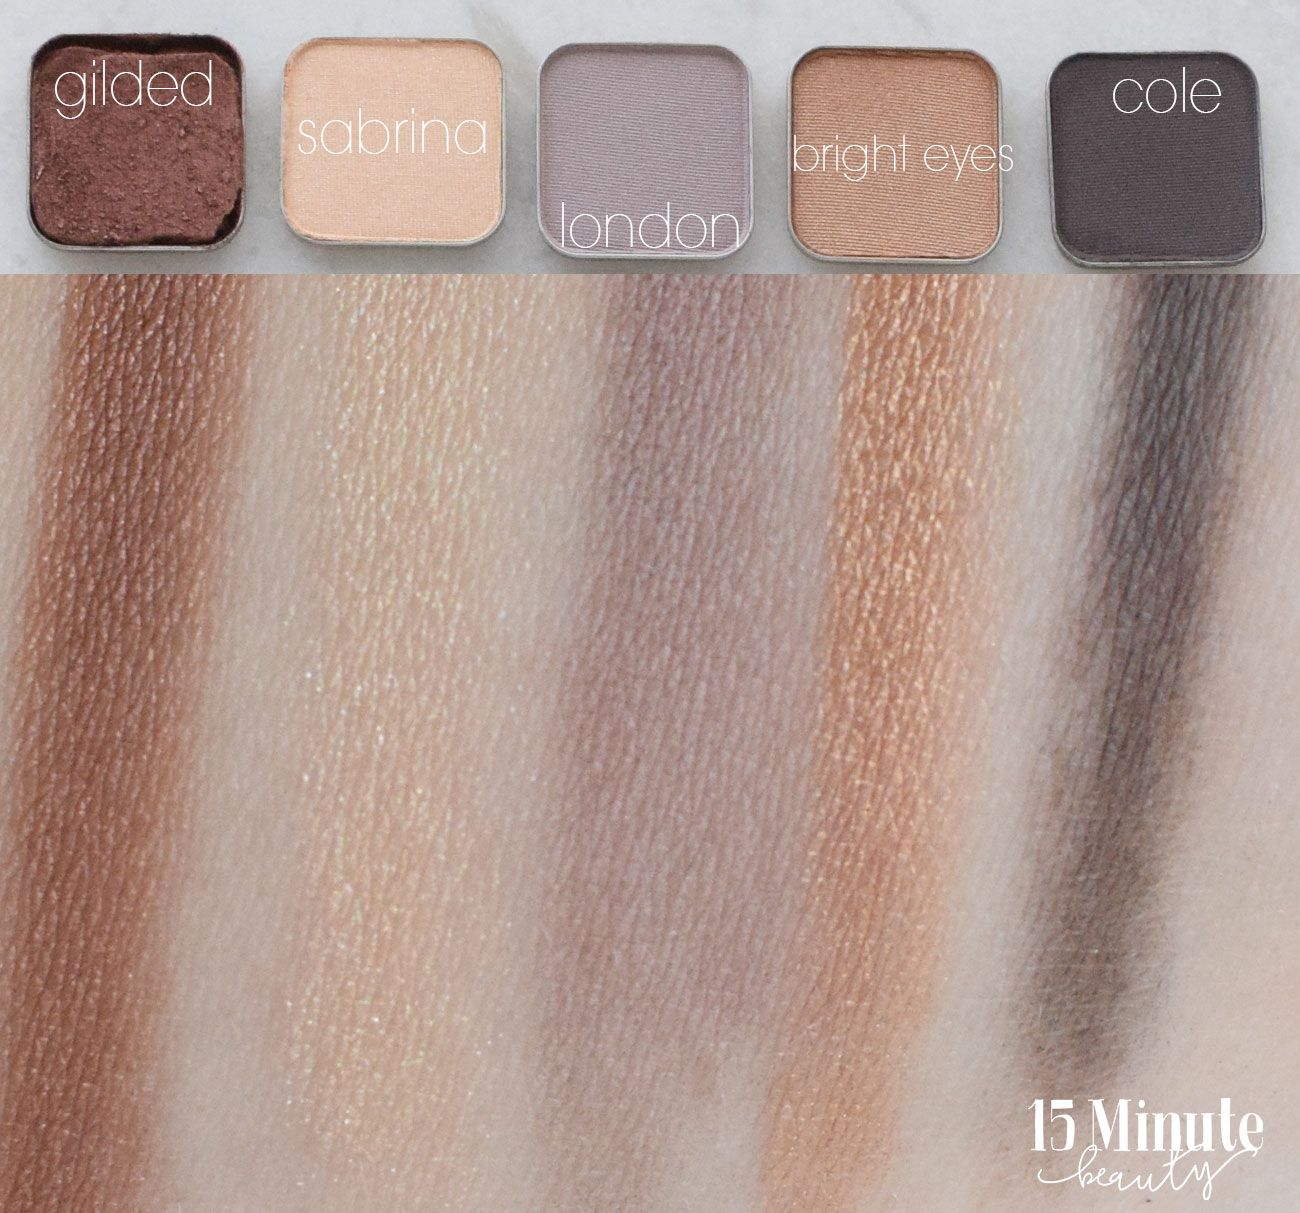 Maskcara Eyeshadow Review and Swatch (With images